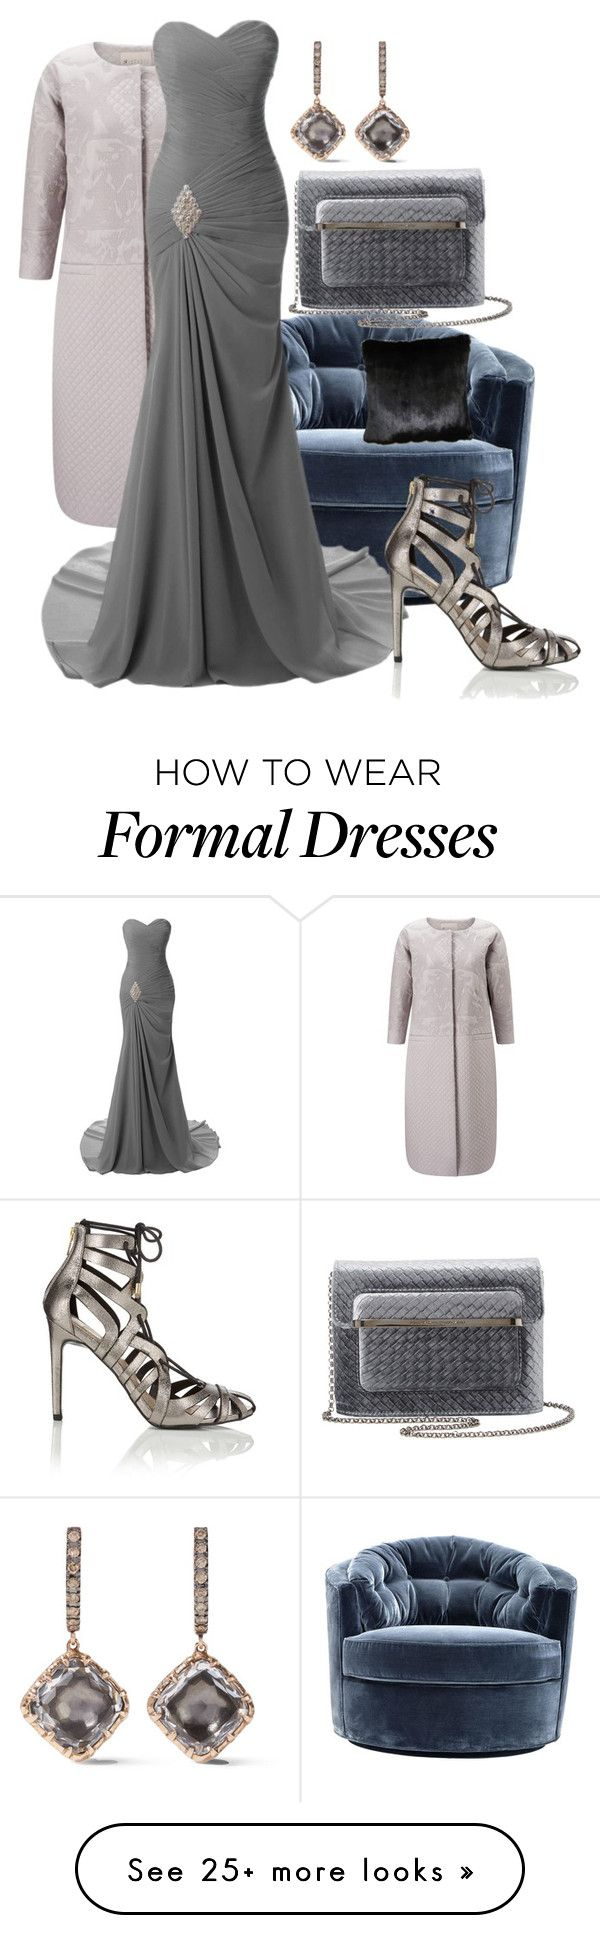 """""""Just My Imagination"""" by chelsofly on Polyvore featuring Eichholtz, Mary Katrantzou, Larkspur & Hawk, Pillow Decor and Miss Selfridge"""